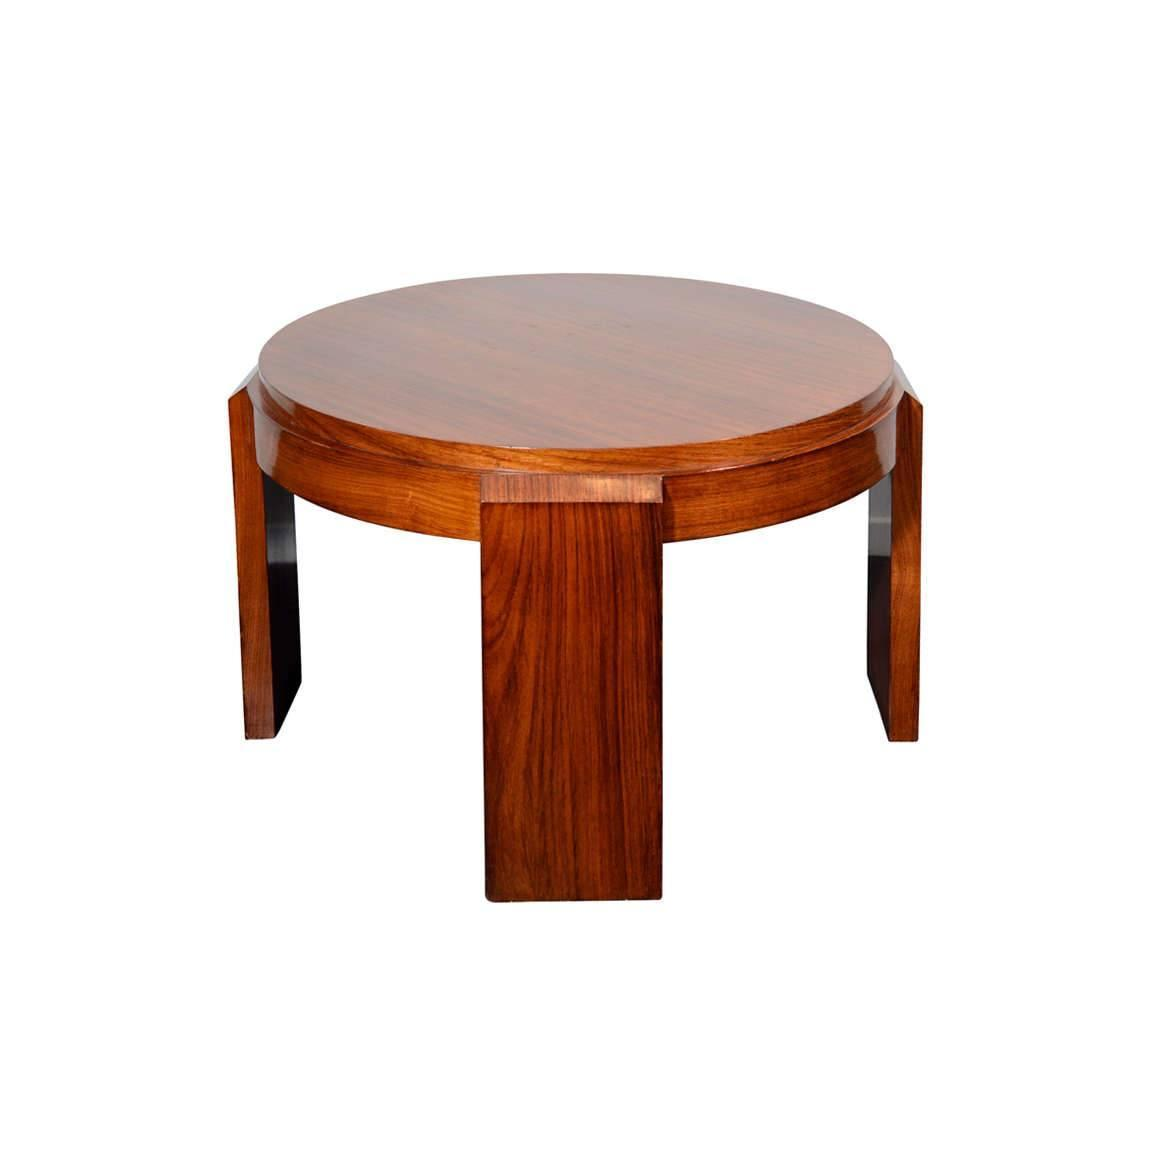 Coffee table by jacques adnet for sale at 1stdibs for Other uses for a coffee table